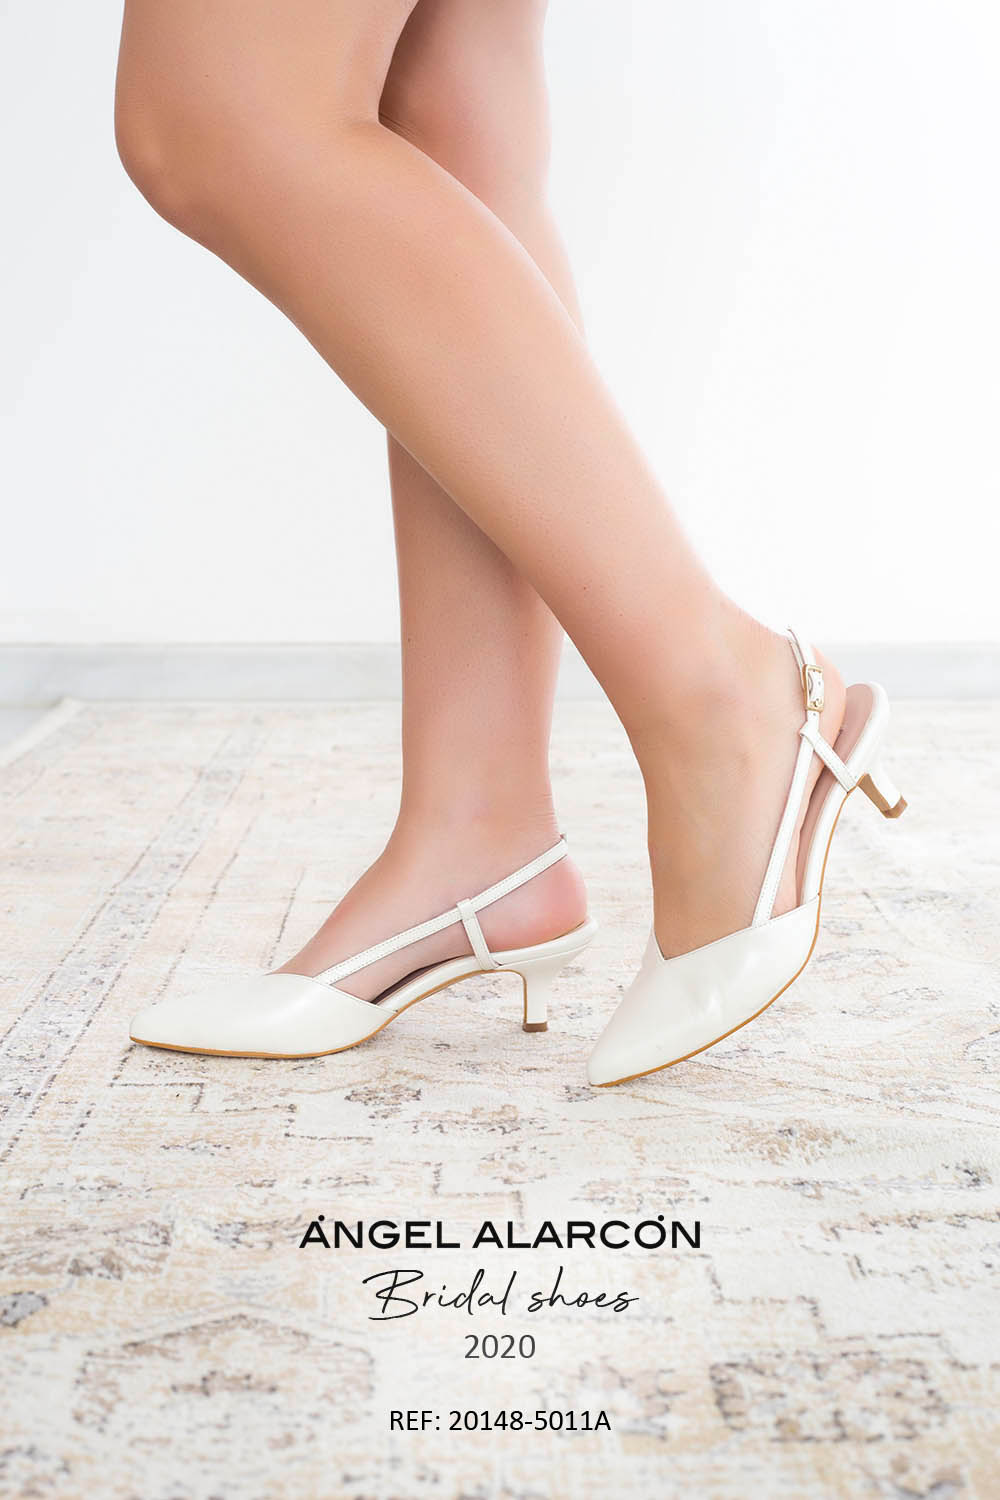 bridal shoes 2020 20150-525C WHITE B . Comfortable women's wedding shoes by Angel Alarcon